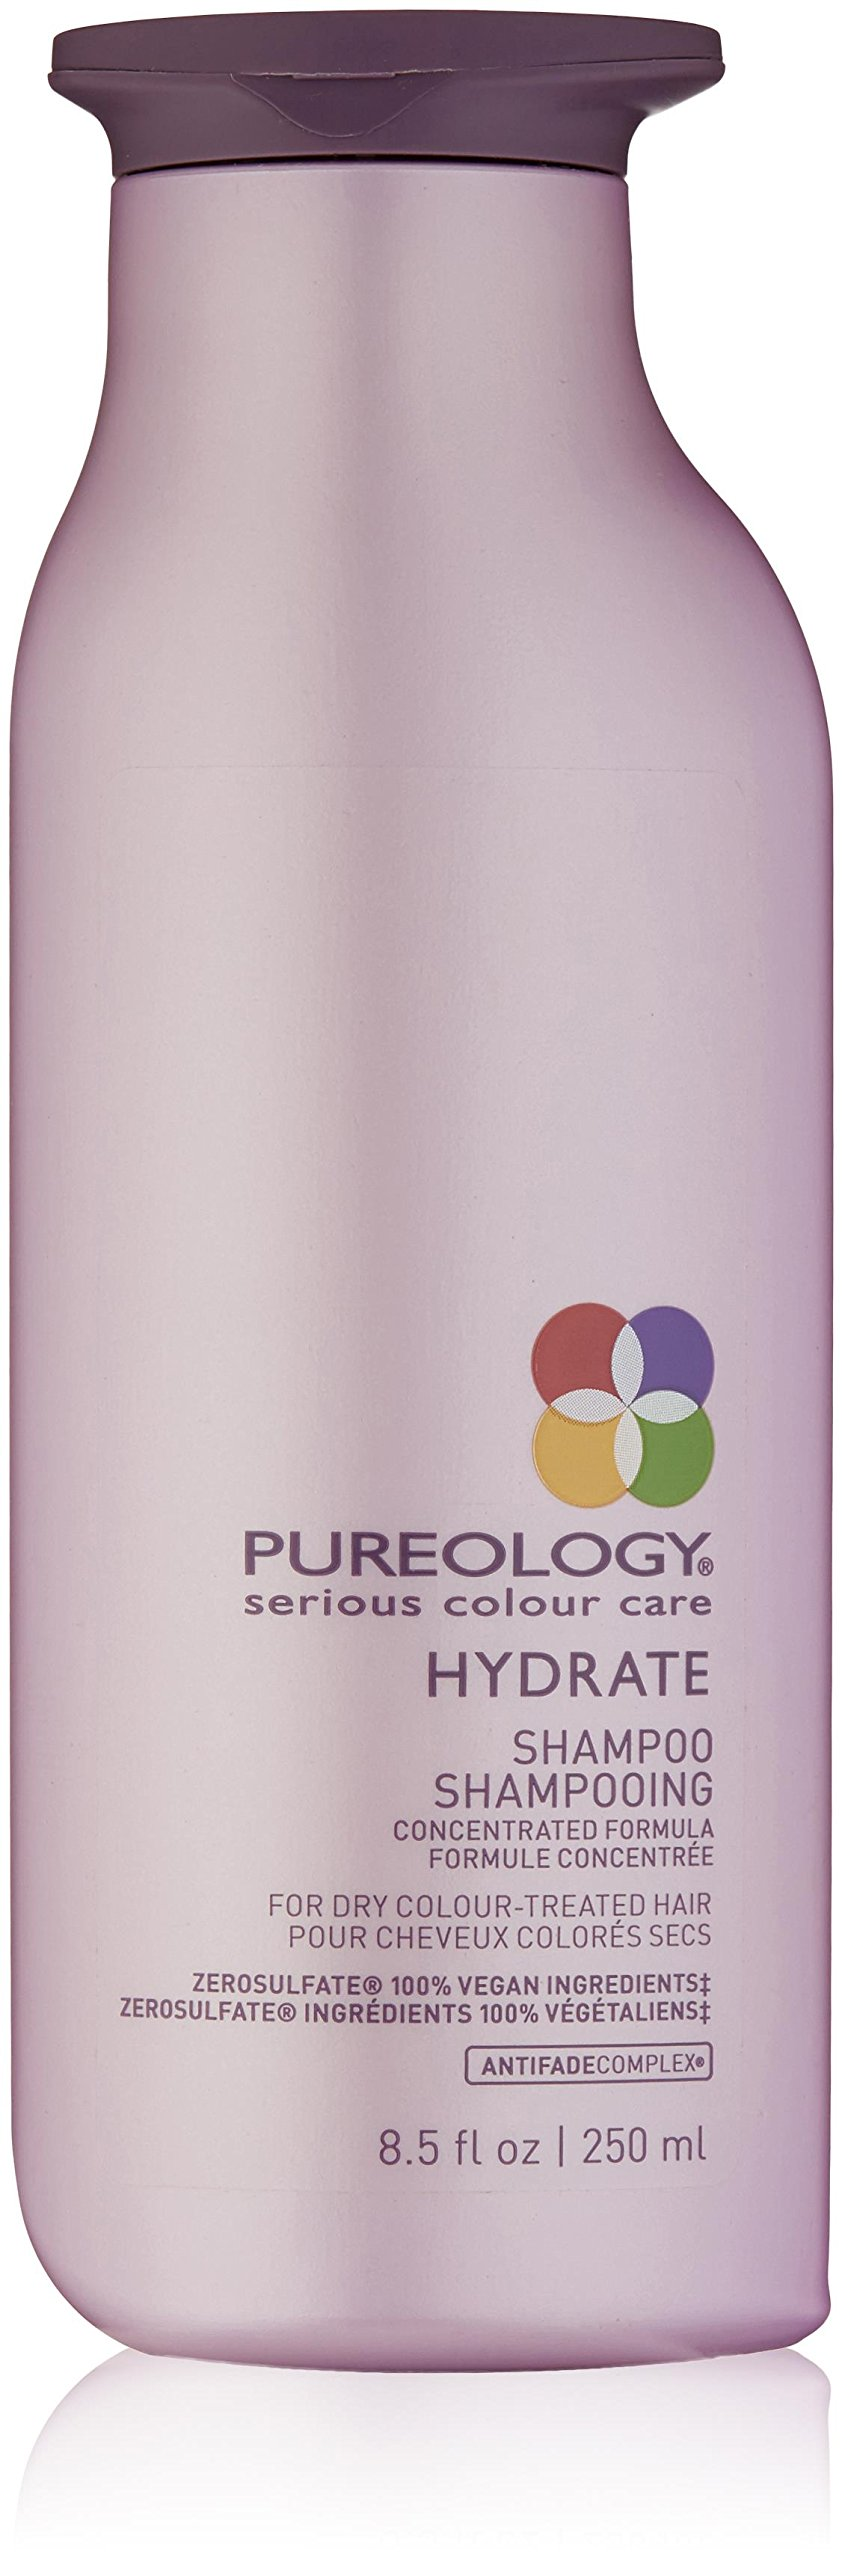 Pureology Hydrate Shampoo (Packaging May Vary) by Pureology